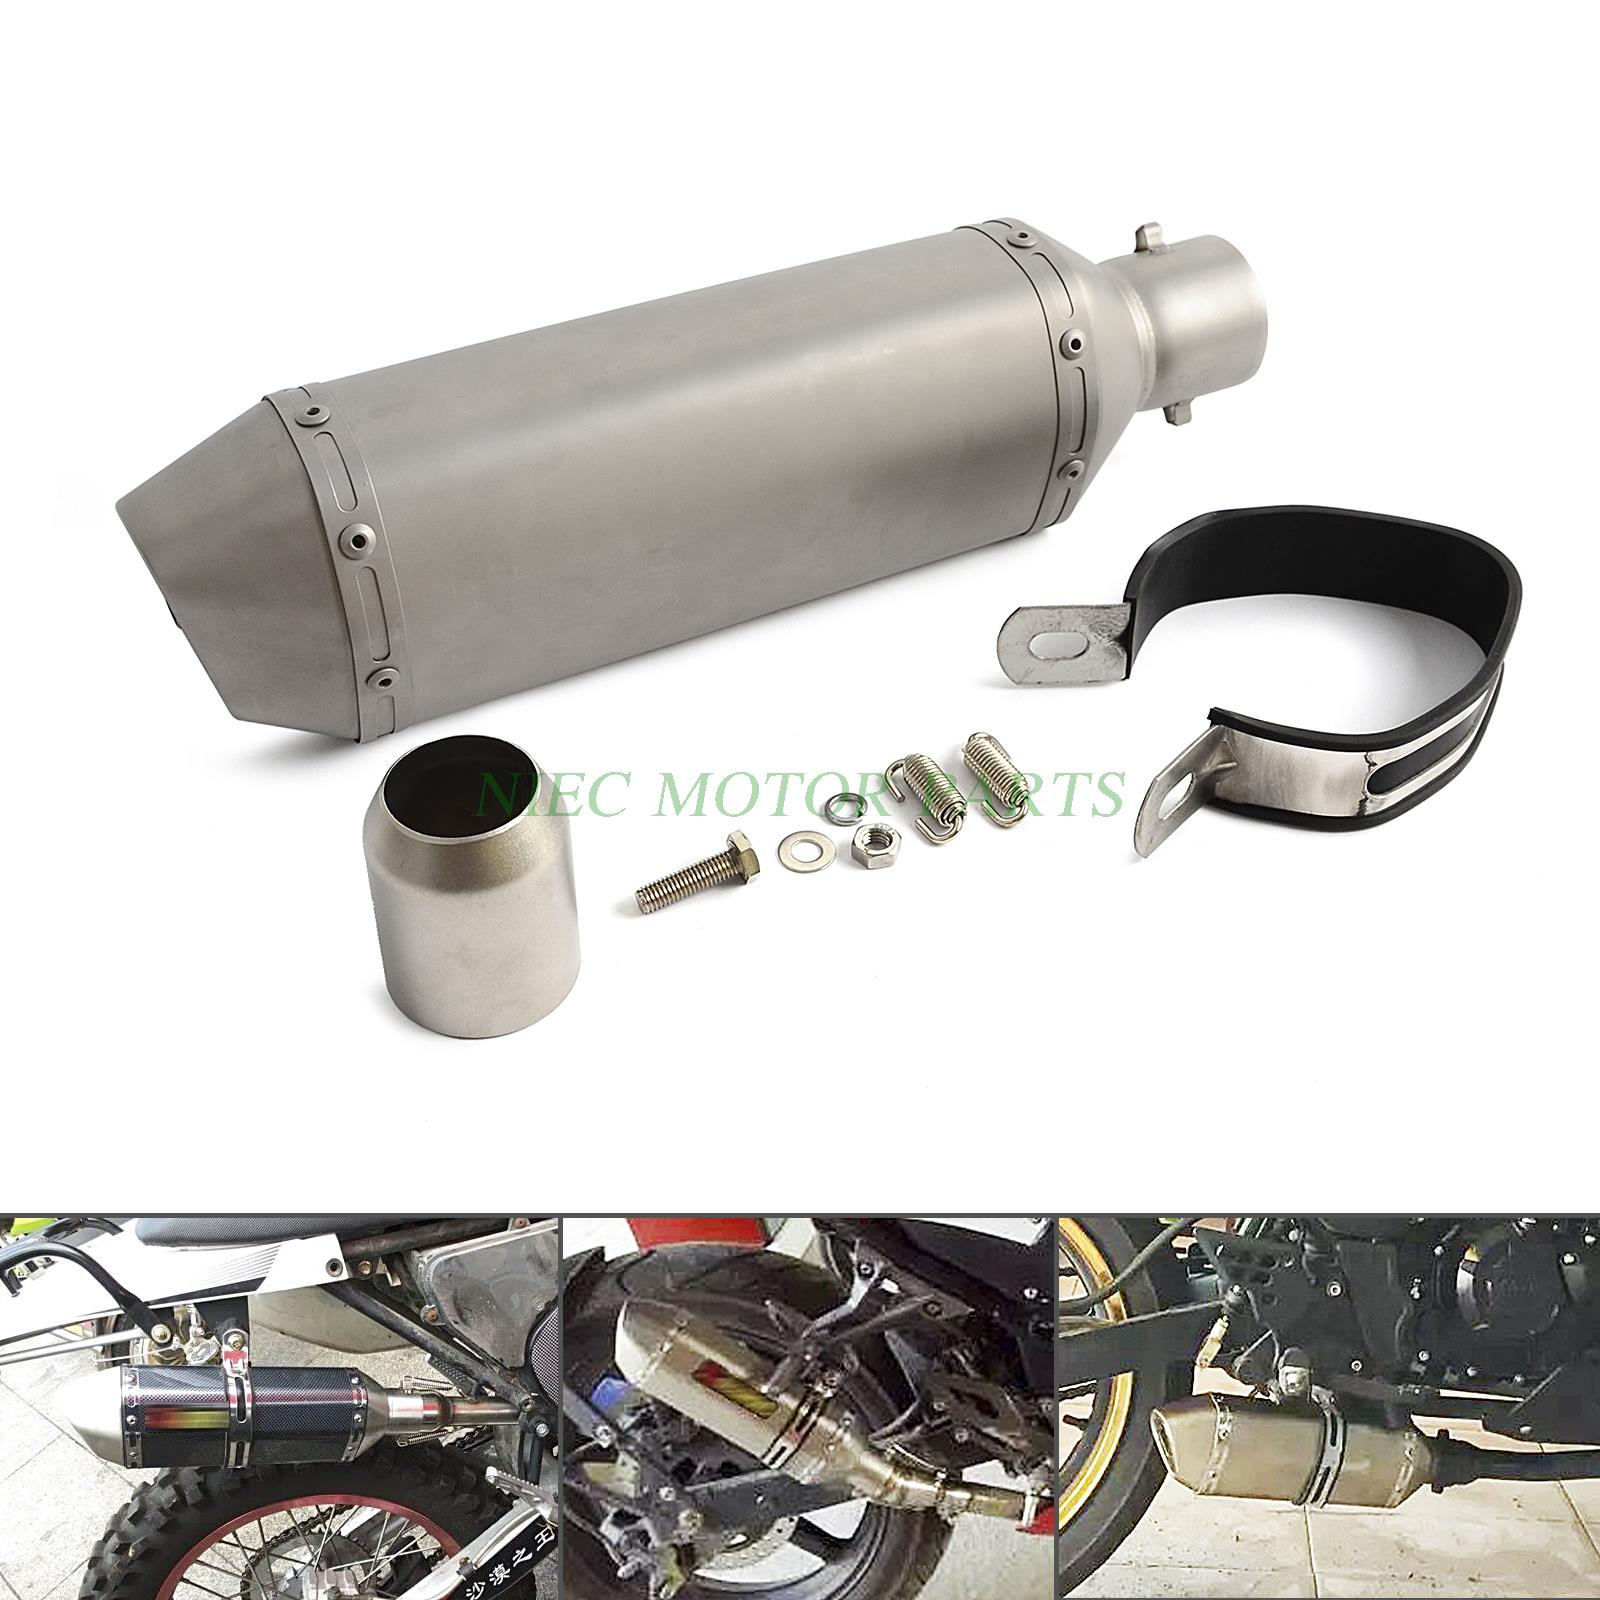 ФОТО Universal 38-51mm Exhaust Muffler With DB Killer For Dirt/Street Bike Scooter ATV  Quad Motorcycle